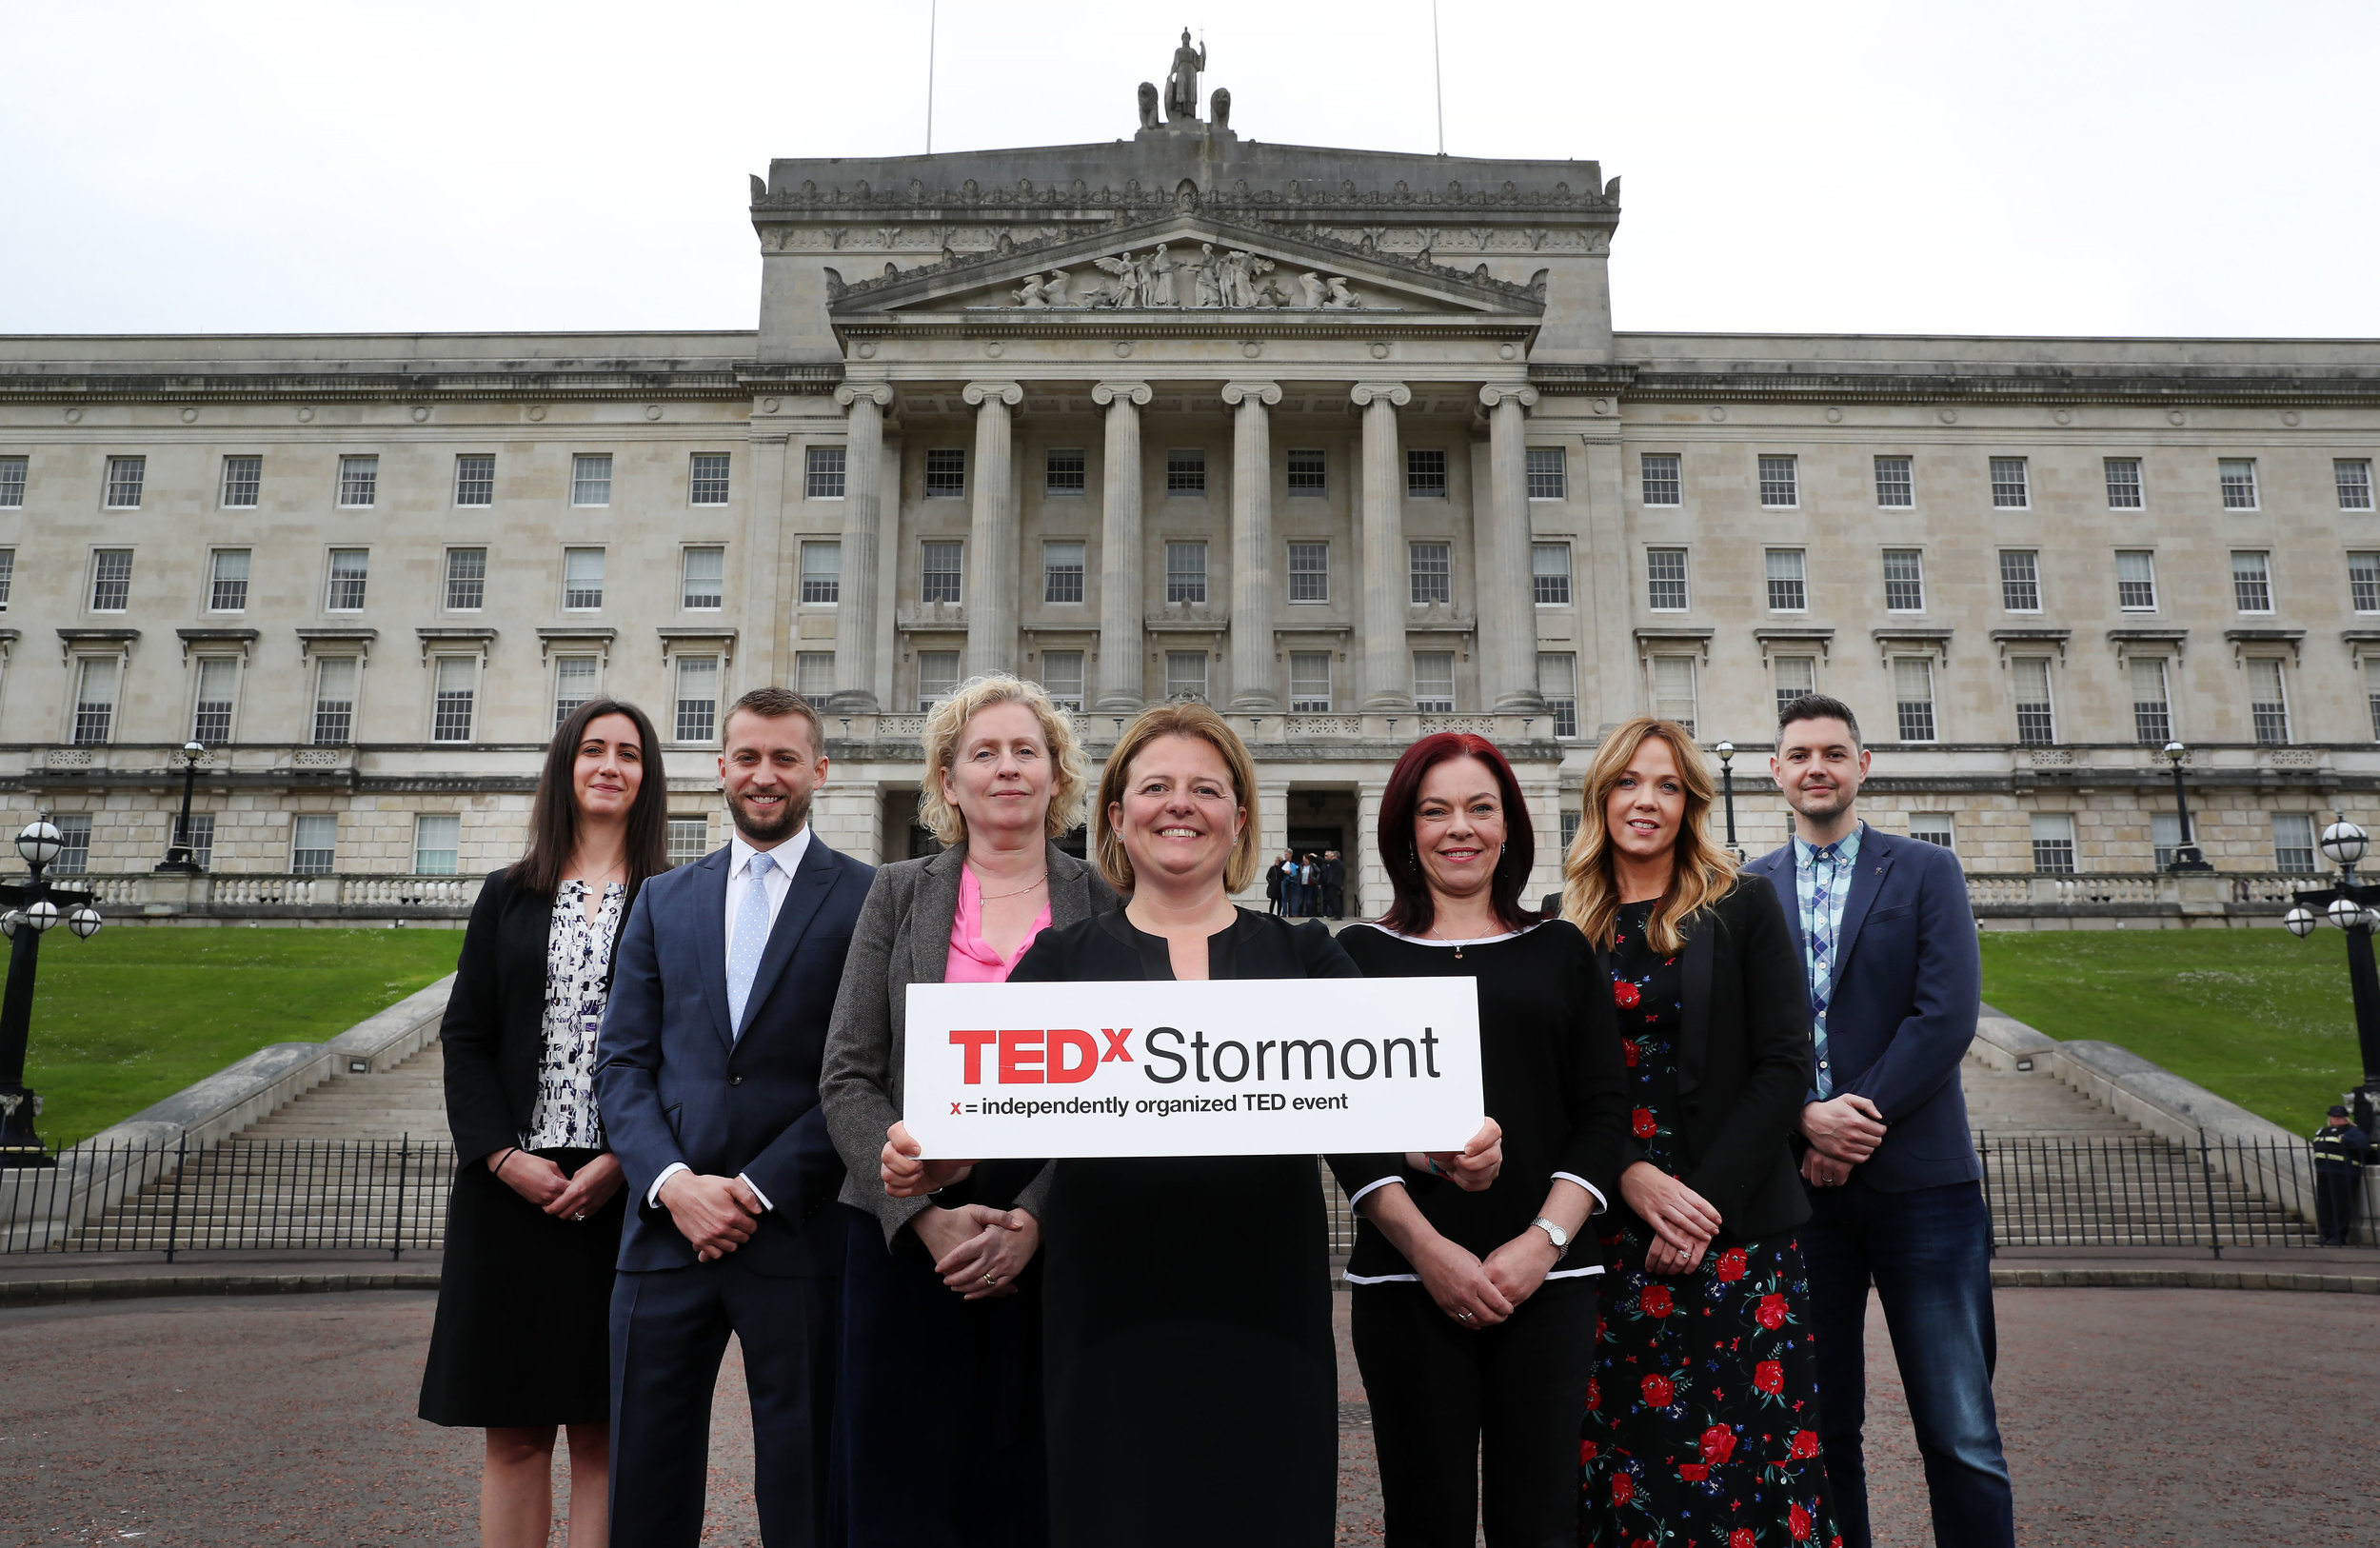 Launching TEDxStormont 2019:  Naomi Majury, Allstate, Conor Aiken, Herbert Smith Freehills, Siobhan Broderick, Urban Villages NI, Eva Grosman, TEDxStormont Curator, Clare Bailey MLA, Selina Wallace, Smarts and Mark Whyte, Belfast Live.